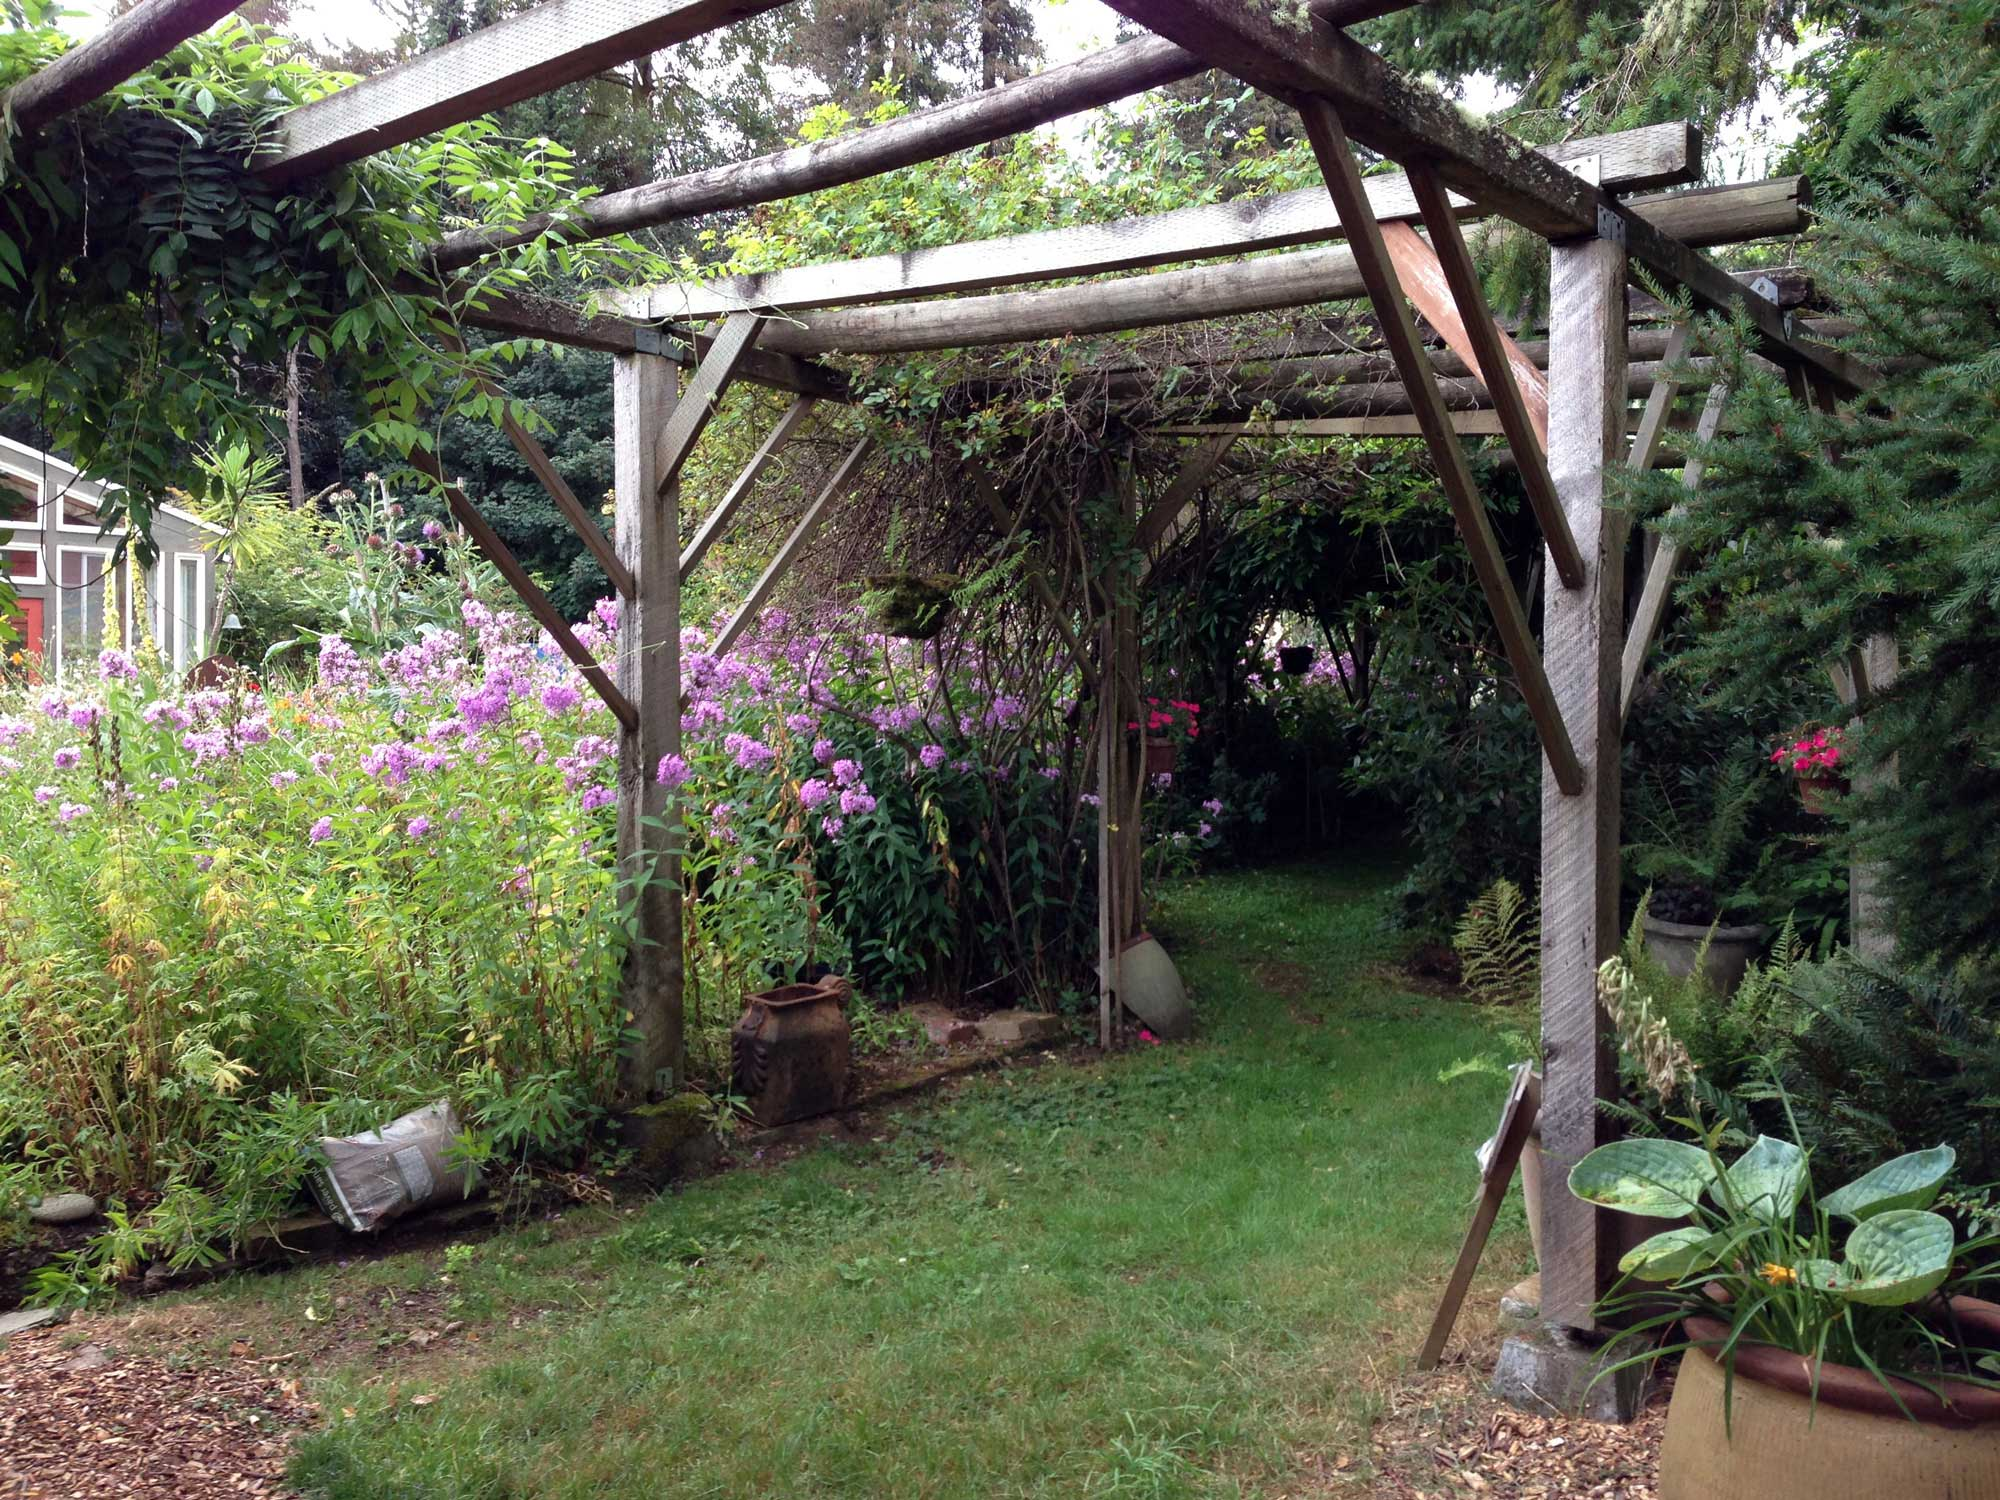 Large garden arbor with flowers